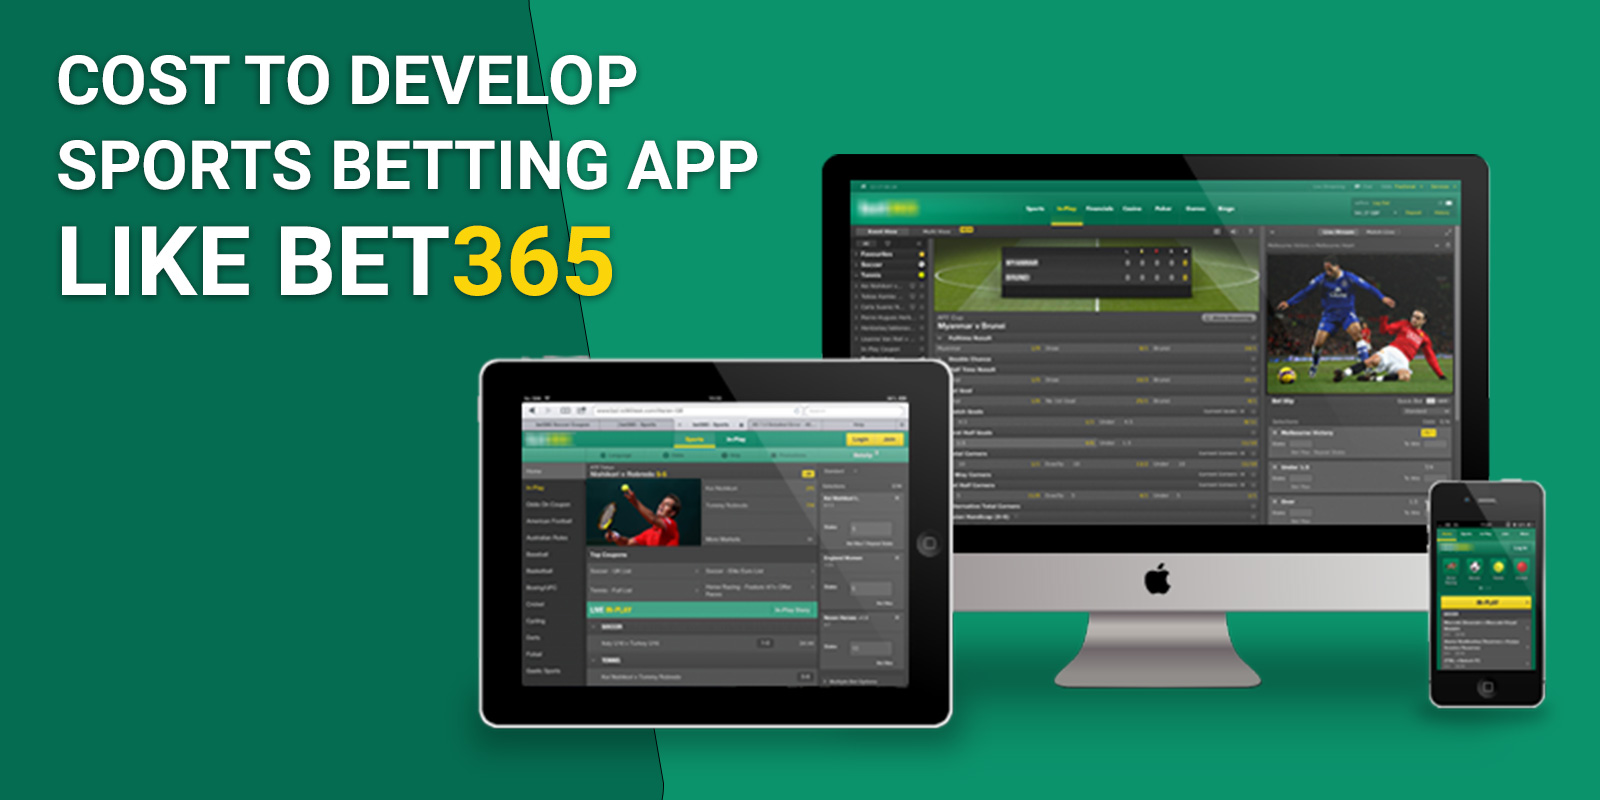 cost_to_develop_sports_betting_app_like_Bet365